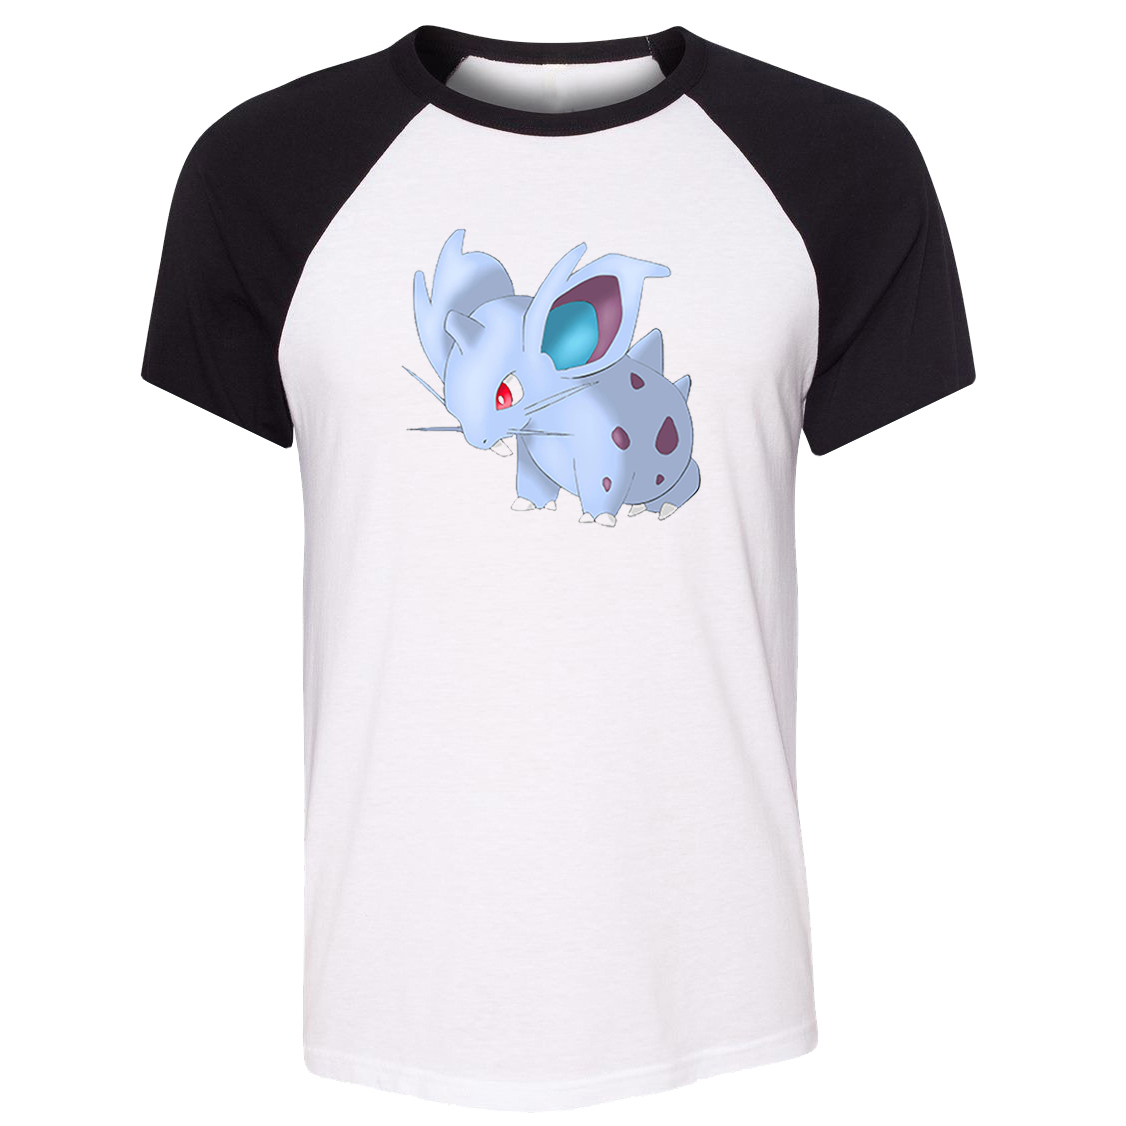 Unisex Summer T-shirt Poison Type Pokemon National Pokedex 029 Nidoran Pattern Raglan Short Sleeve Men T shirt print Tee Tops image